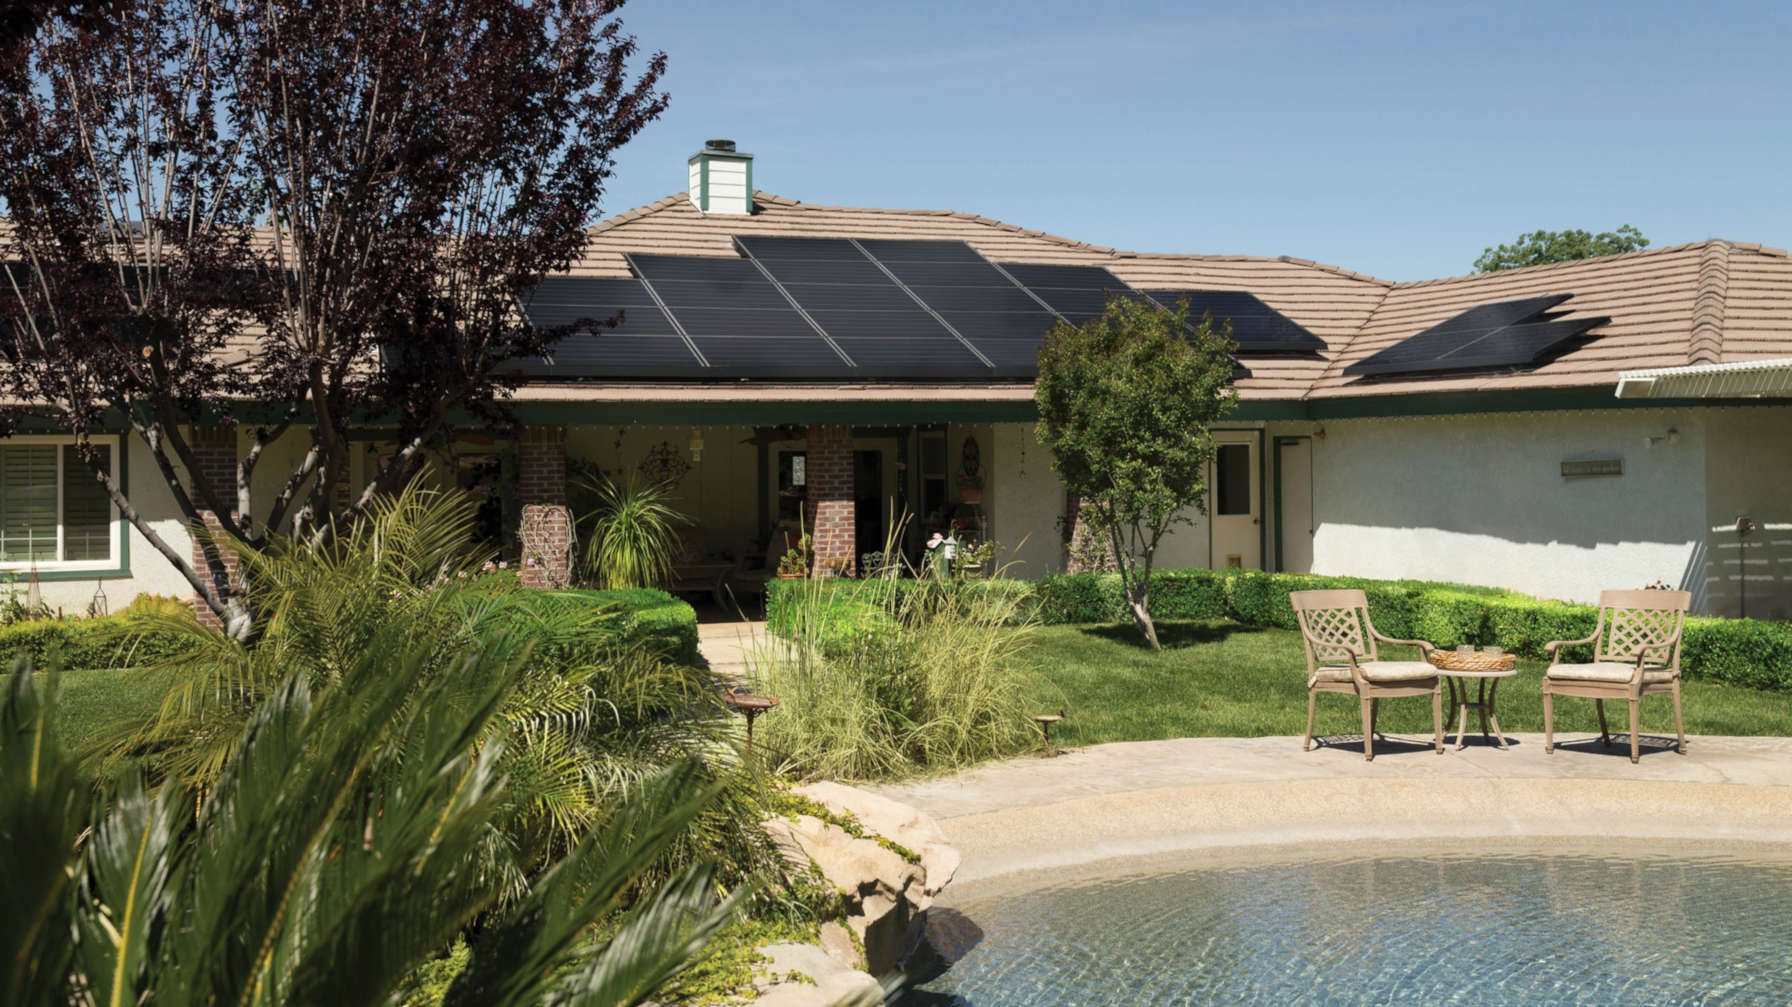 What are the advantages of photovoltaic systems?